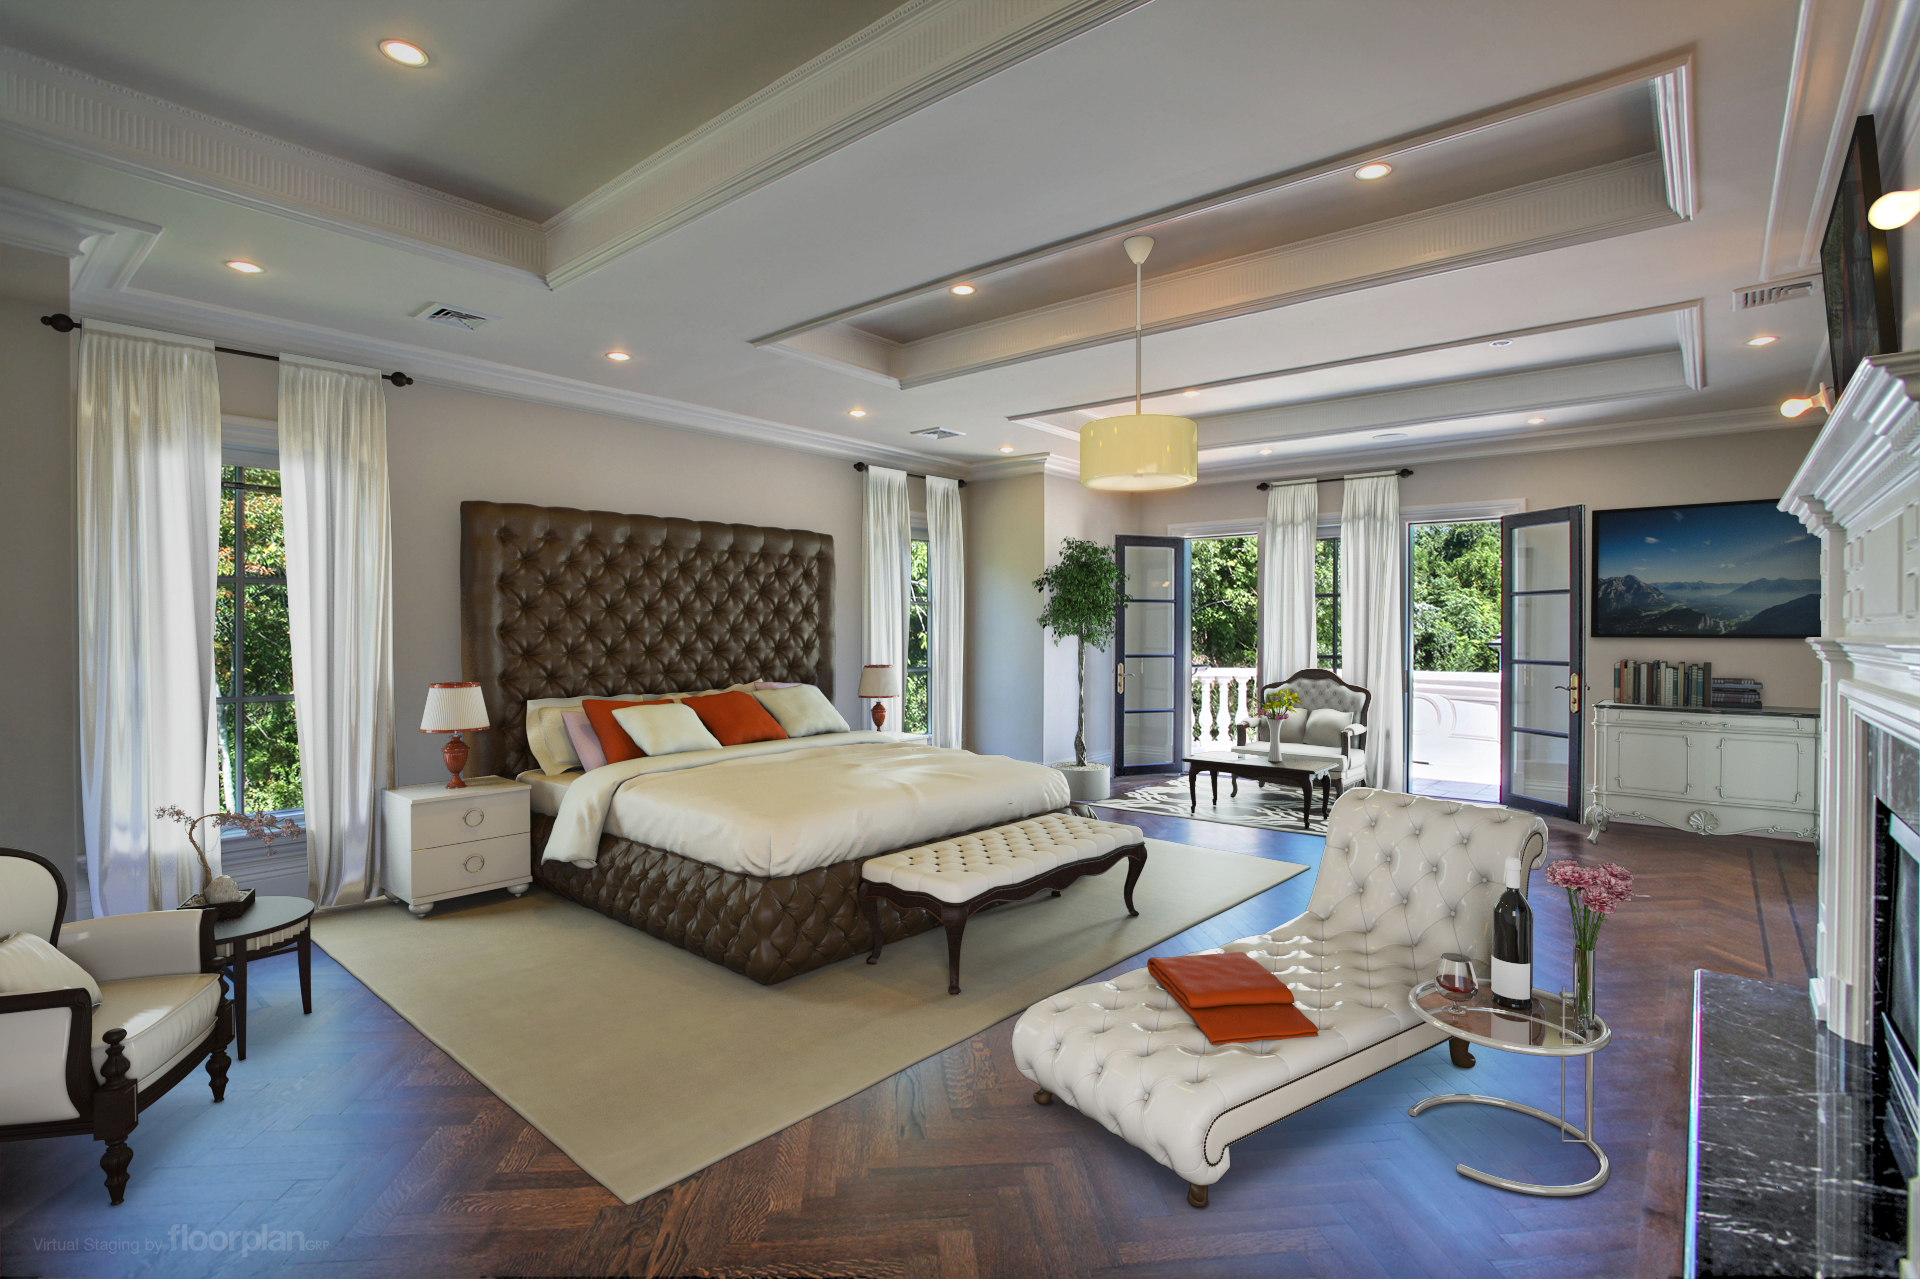 Virtually Staged Image of 15 Dupont Circle Master Bedroom